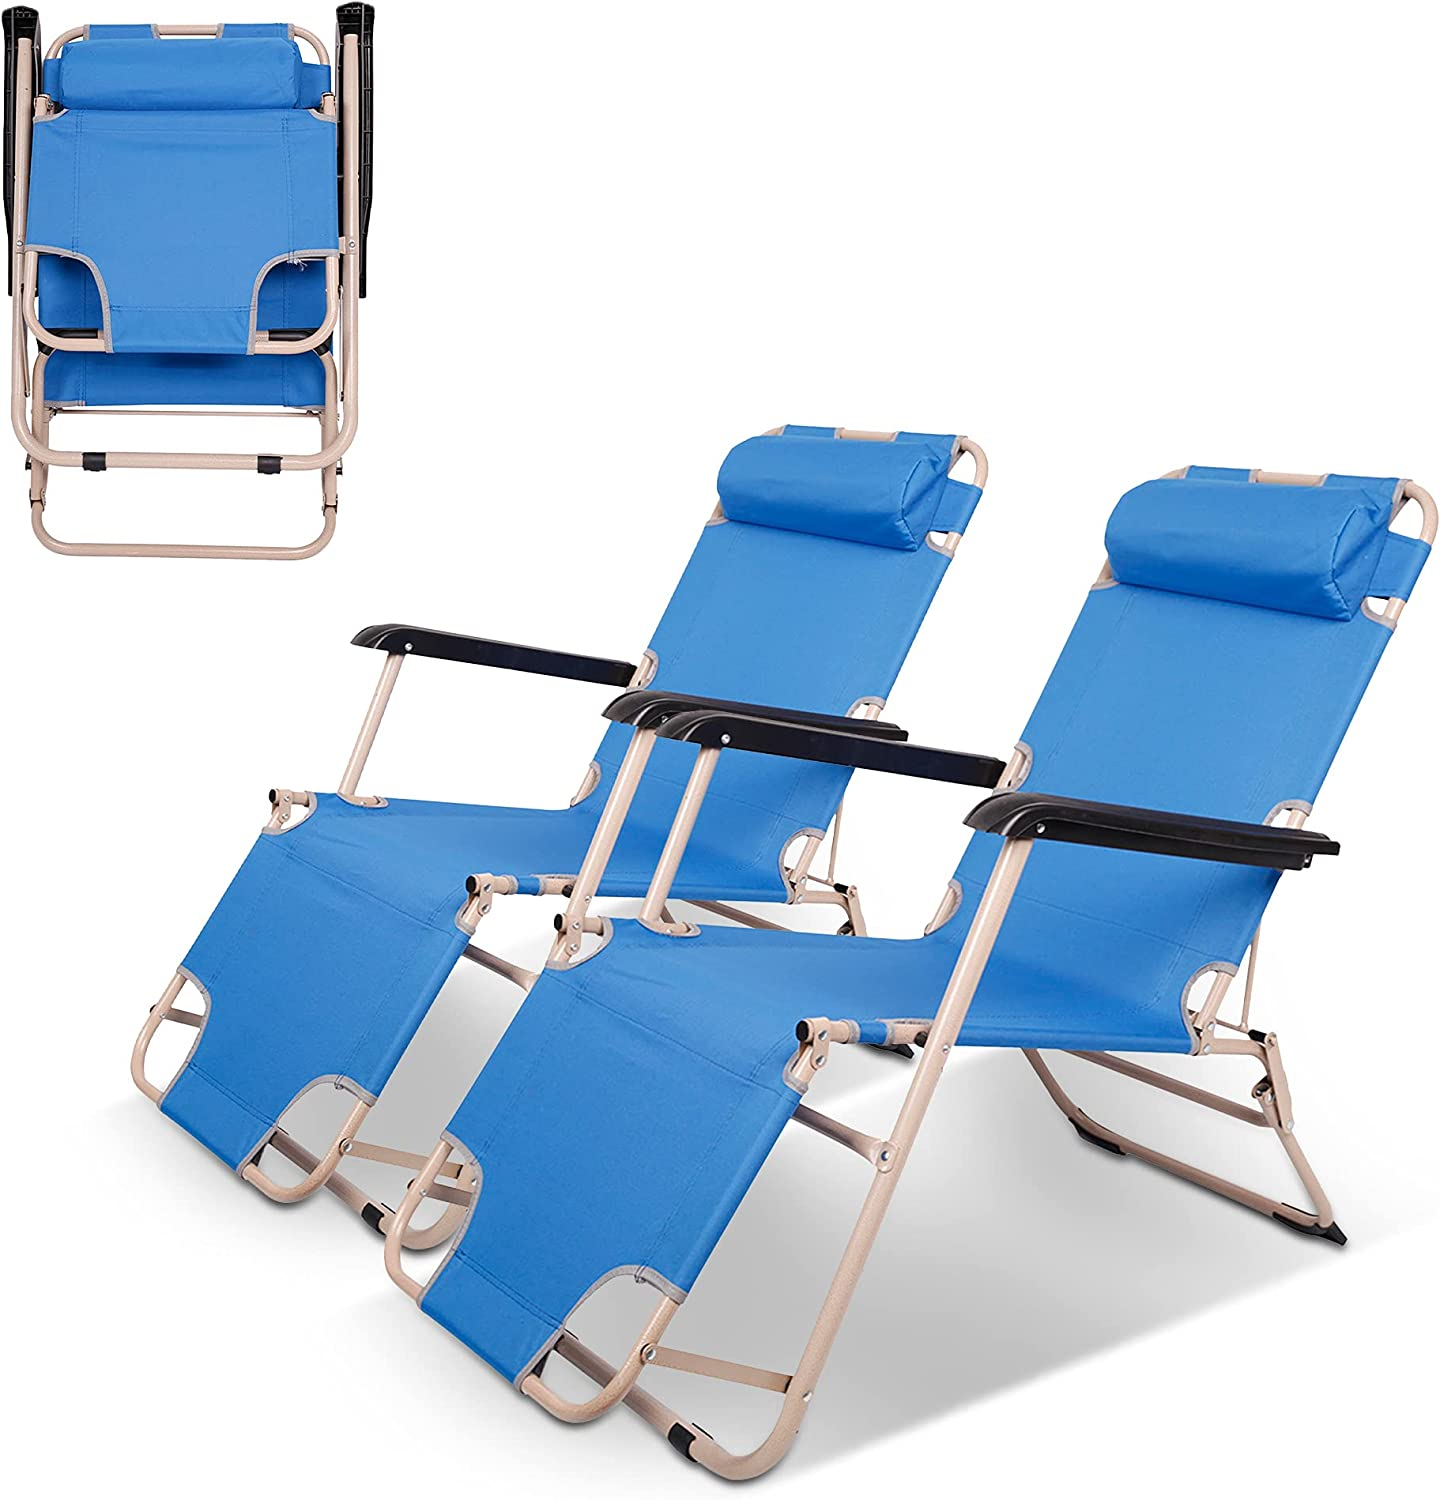 Koreyosh Outdoor Folding Lounge Chair Set of Re safety Patio Portable Max 60% OFF 2